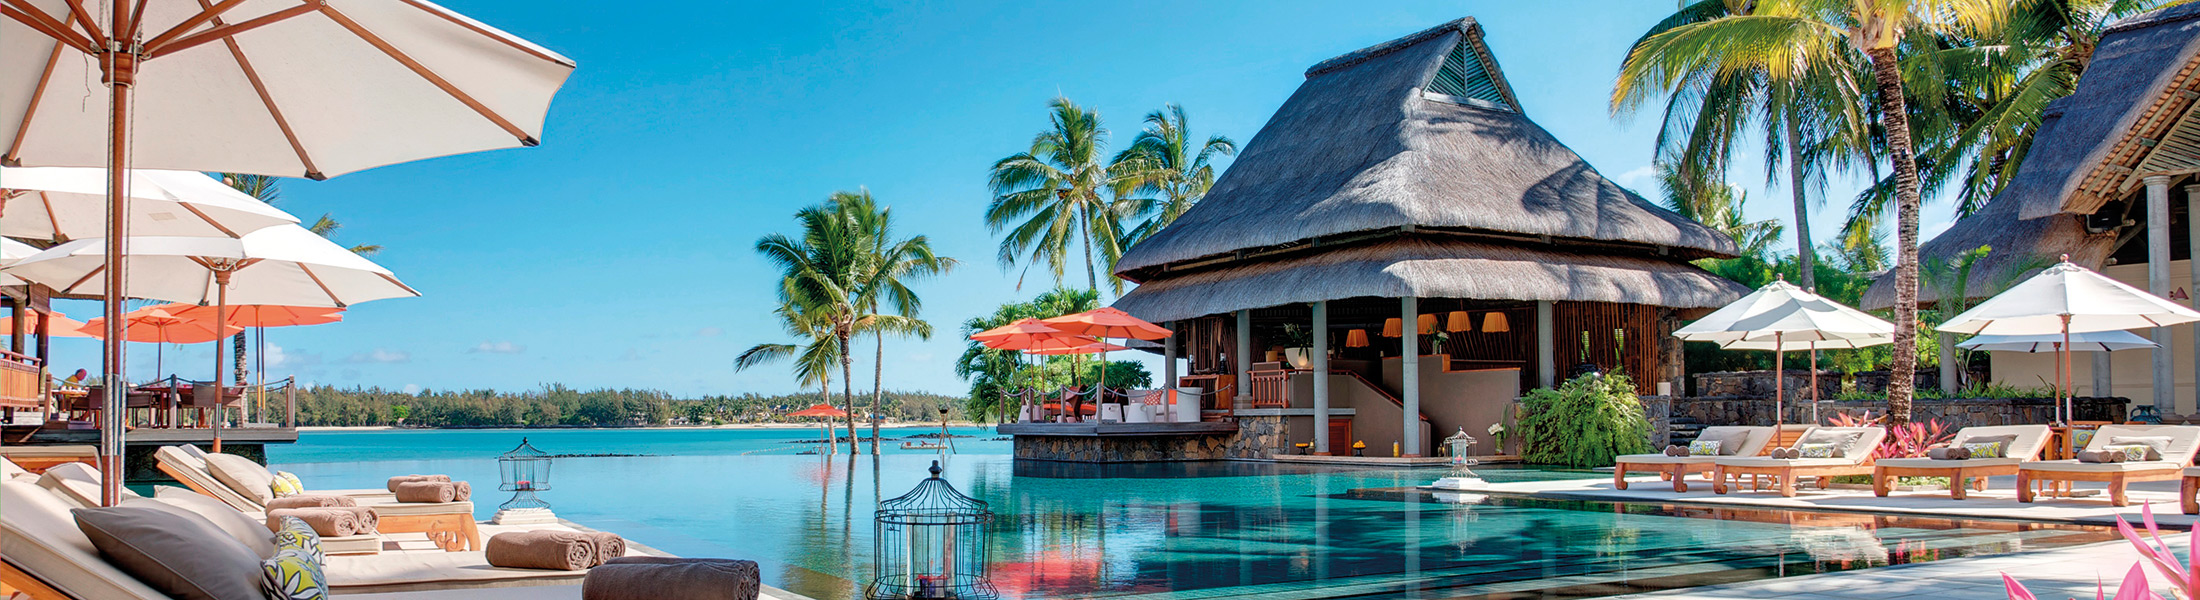 Main pool at Constance Prince Maurice